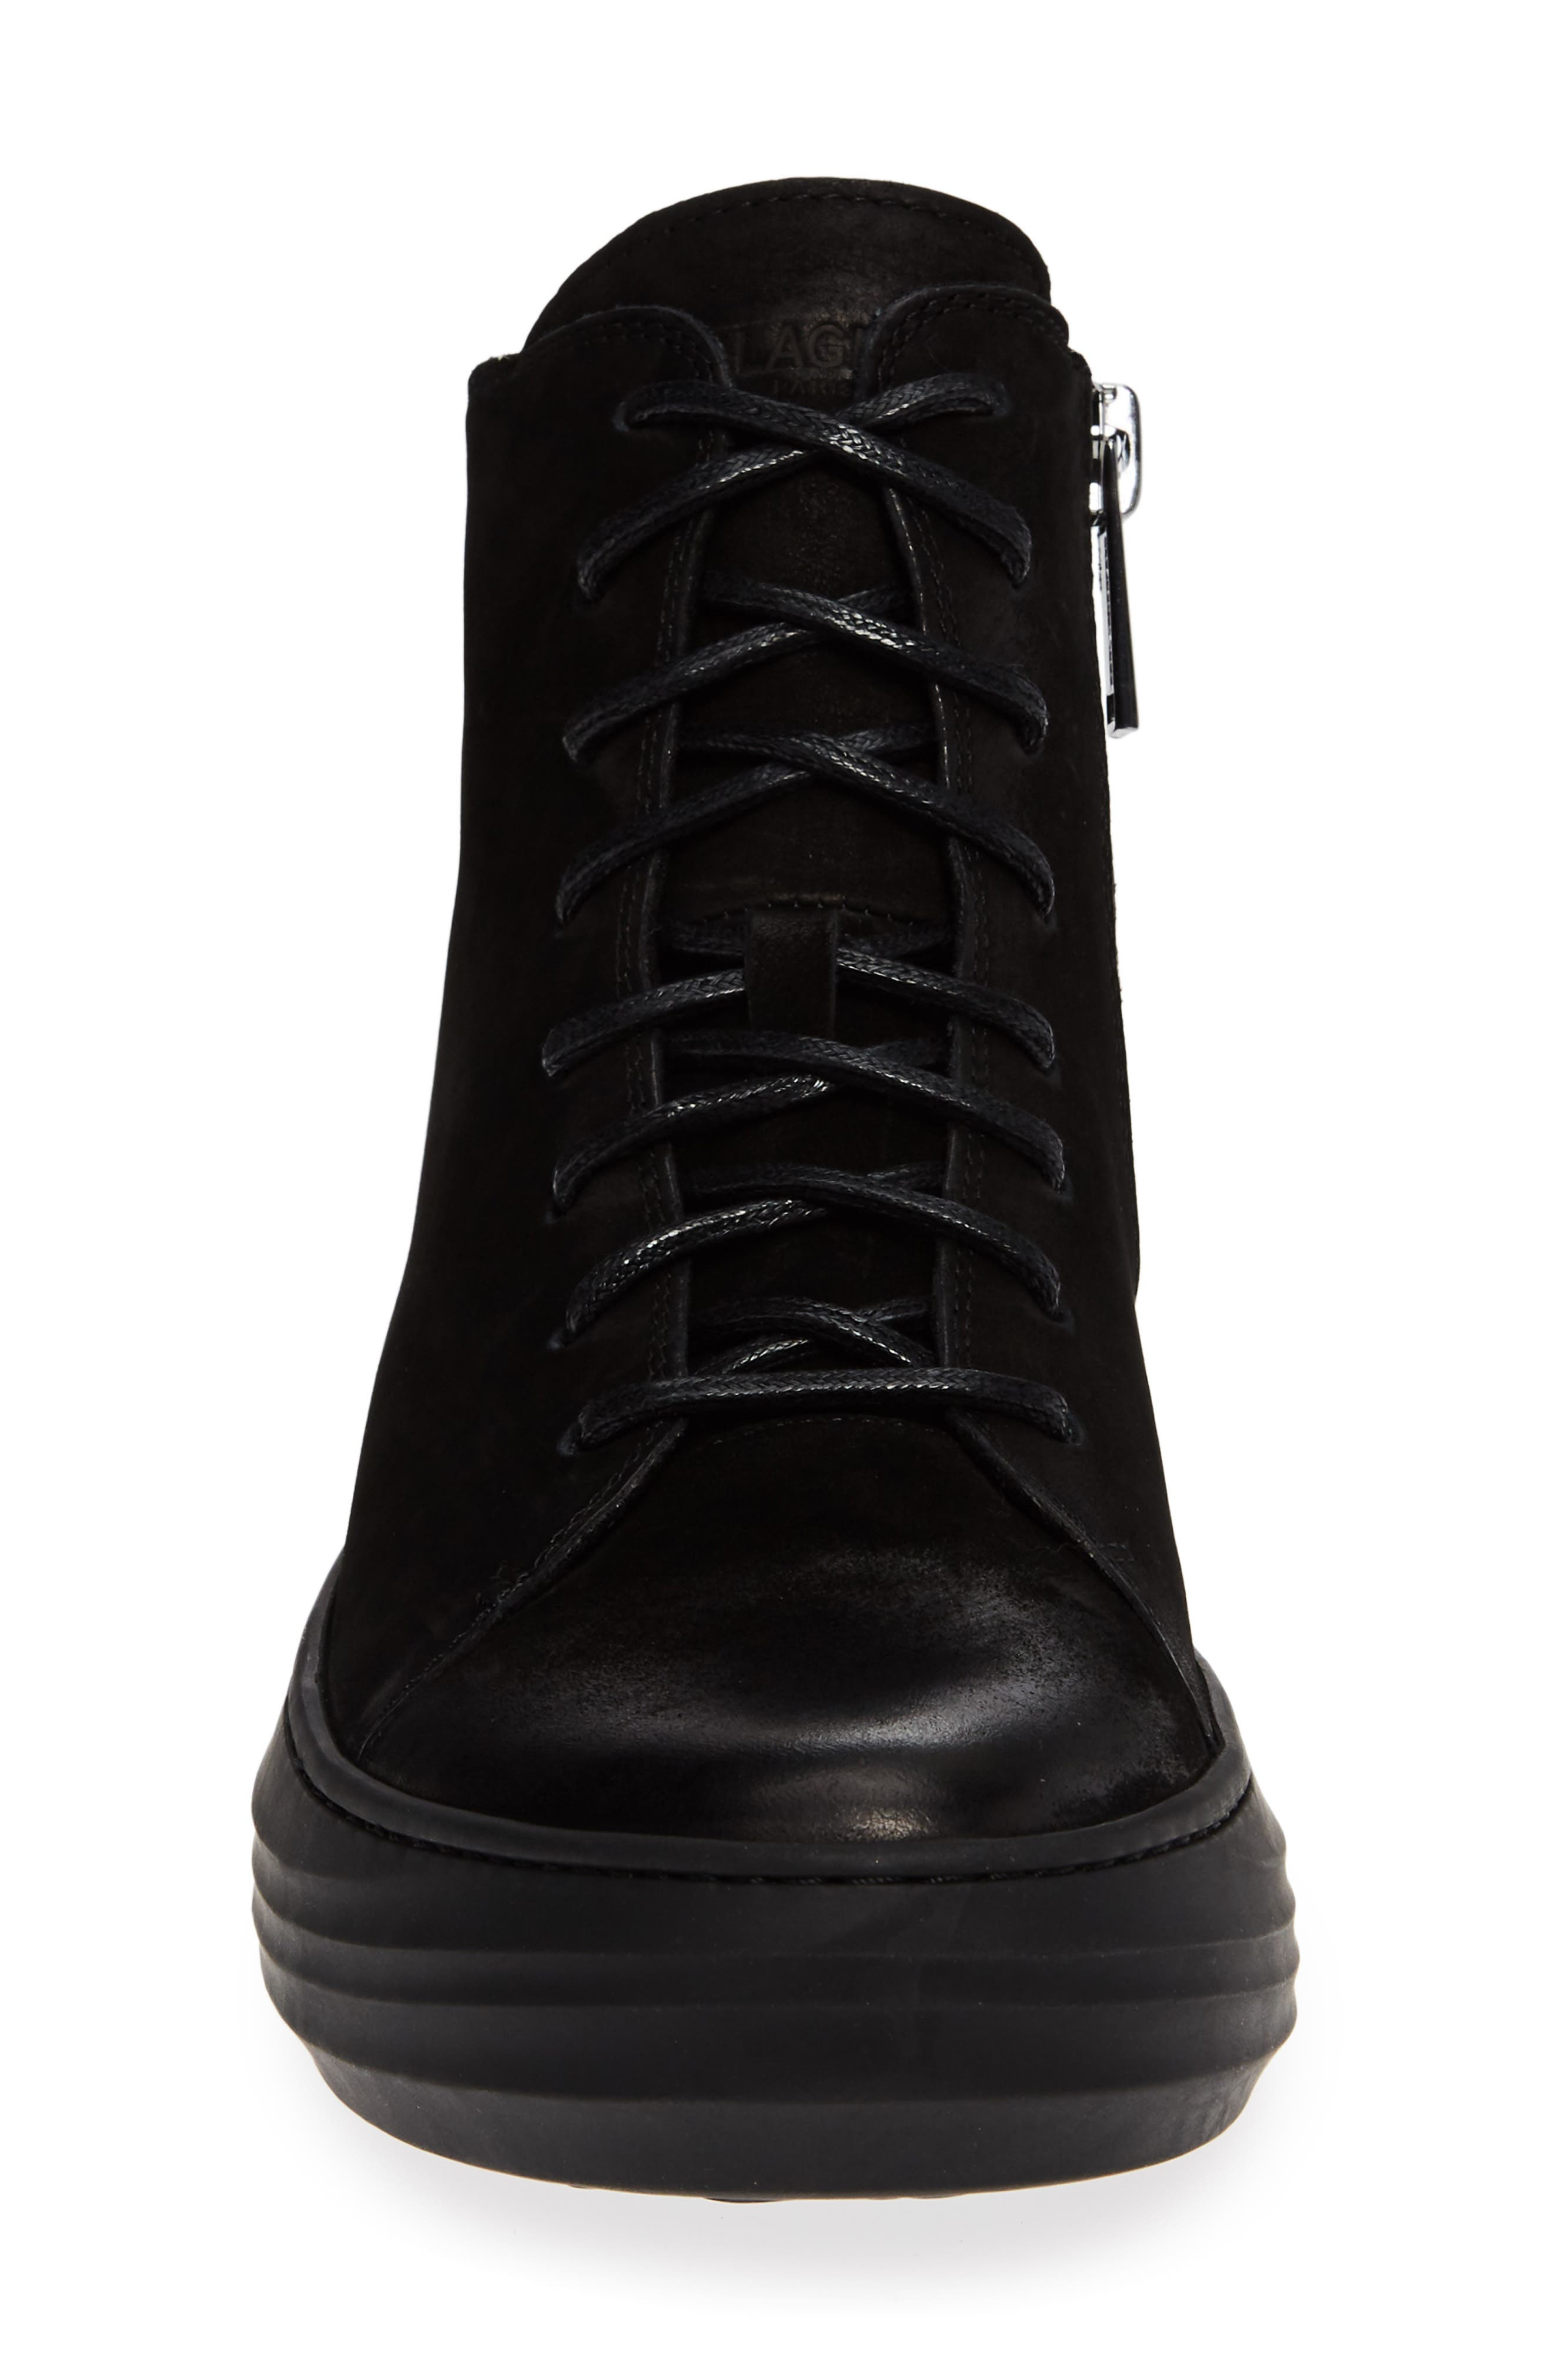 High Top Sneaker,                             Alternate thumbnail 4, color,                             BLACK LEATHER